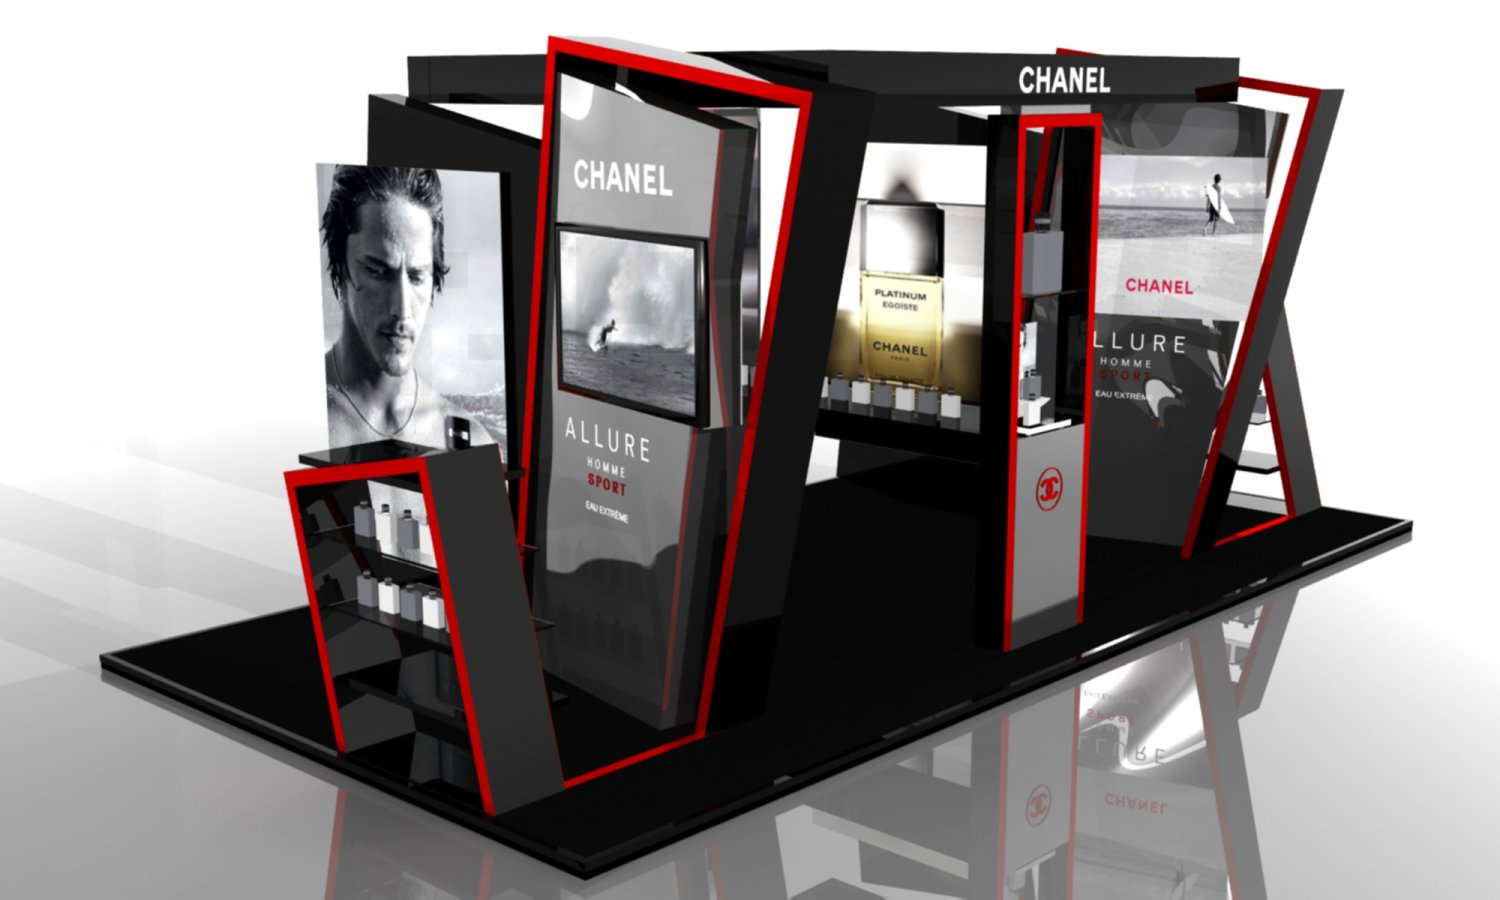 Exhibition Stand 3d Model : Exhibition stand chanel 3d model in entertainment center 3dexport